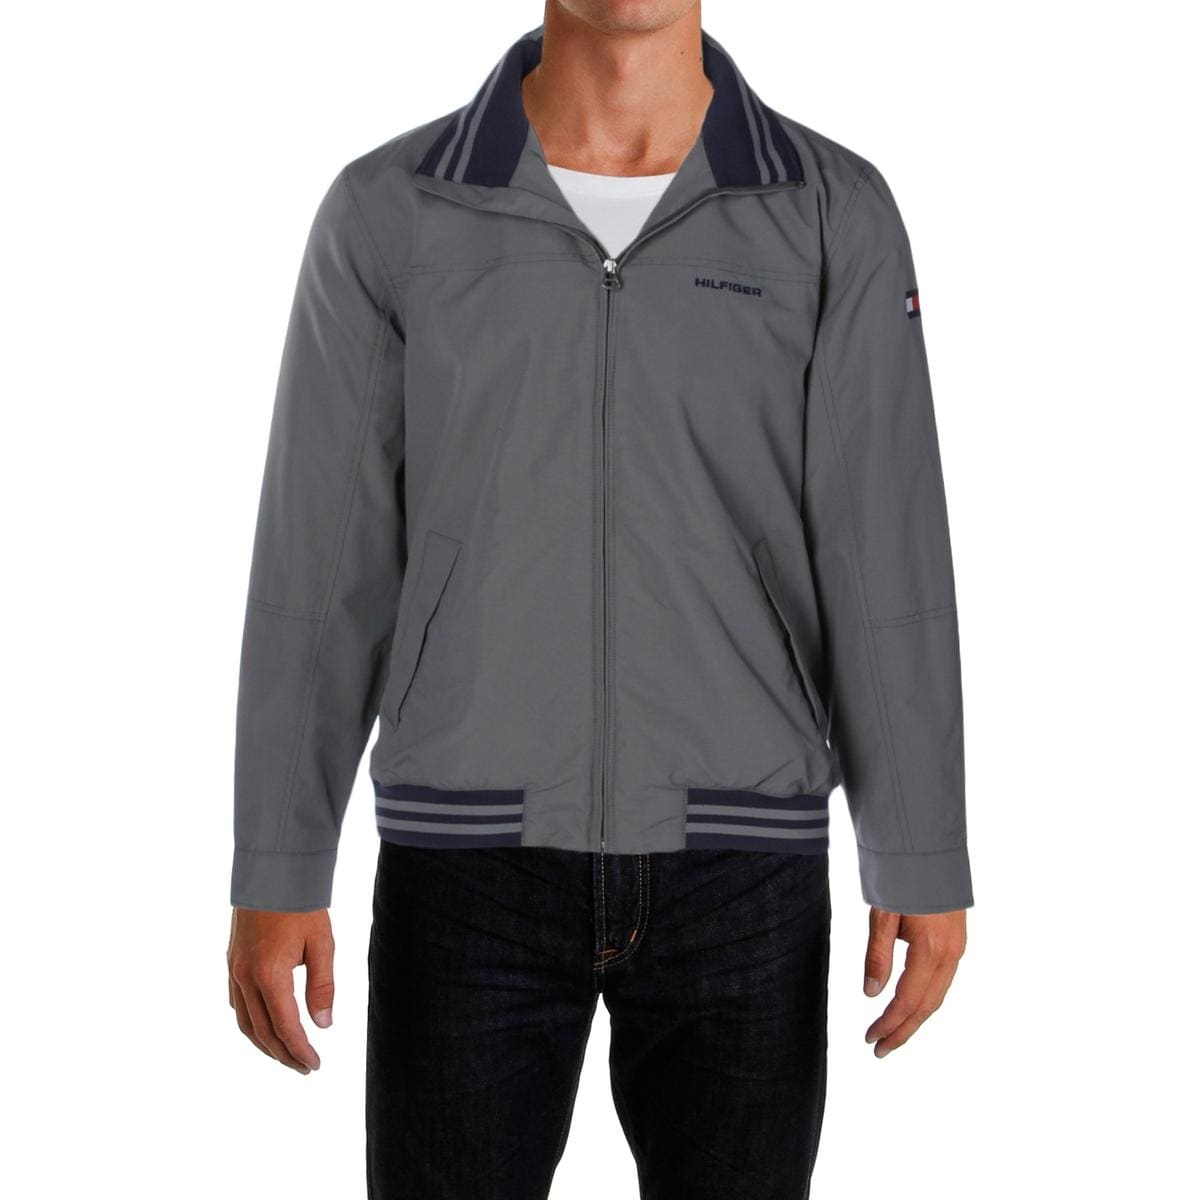 ad45b0e0 Shop Tommy Hilfiger Mens Regatta Jacket Water Resistant Mock Collar - Free  Shipping On Orders Over $45 - Overstock - 13318613